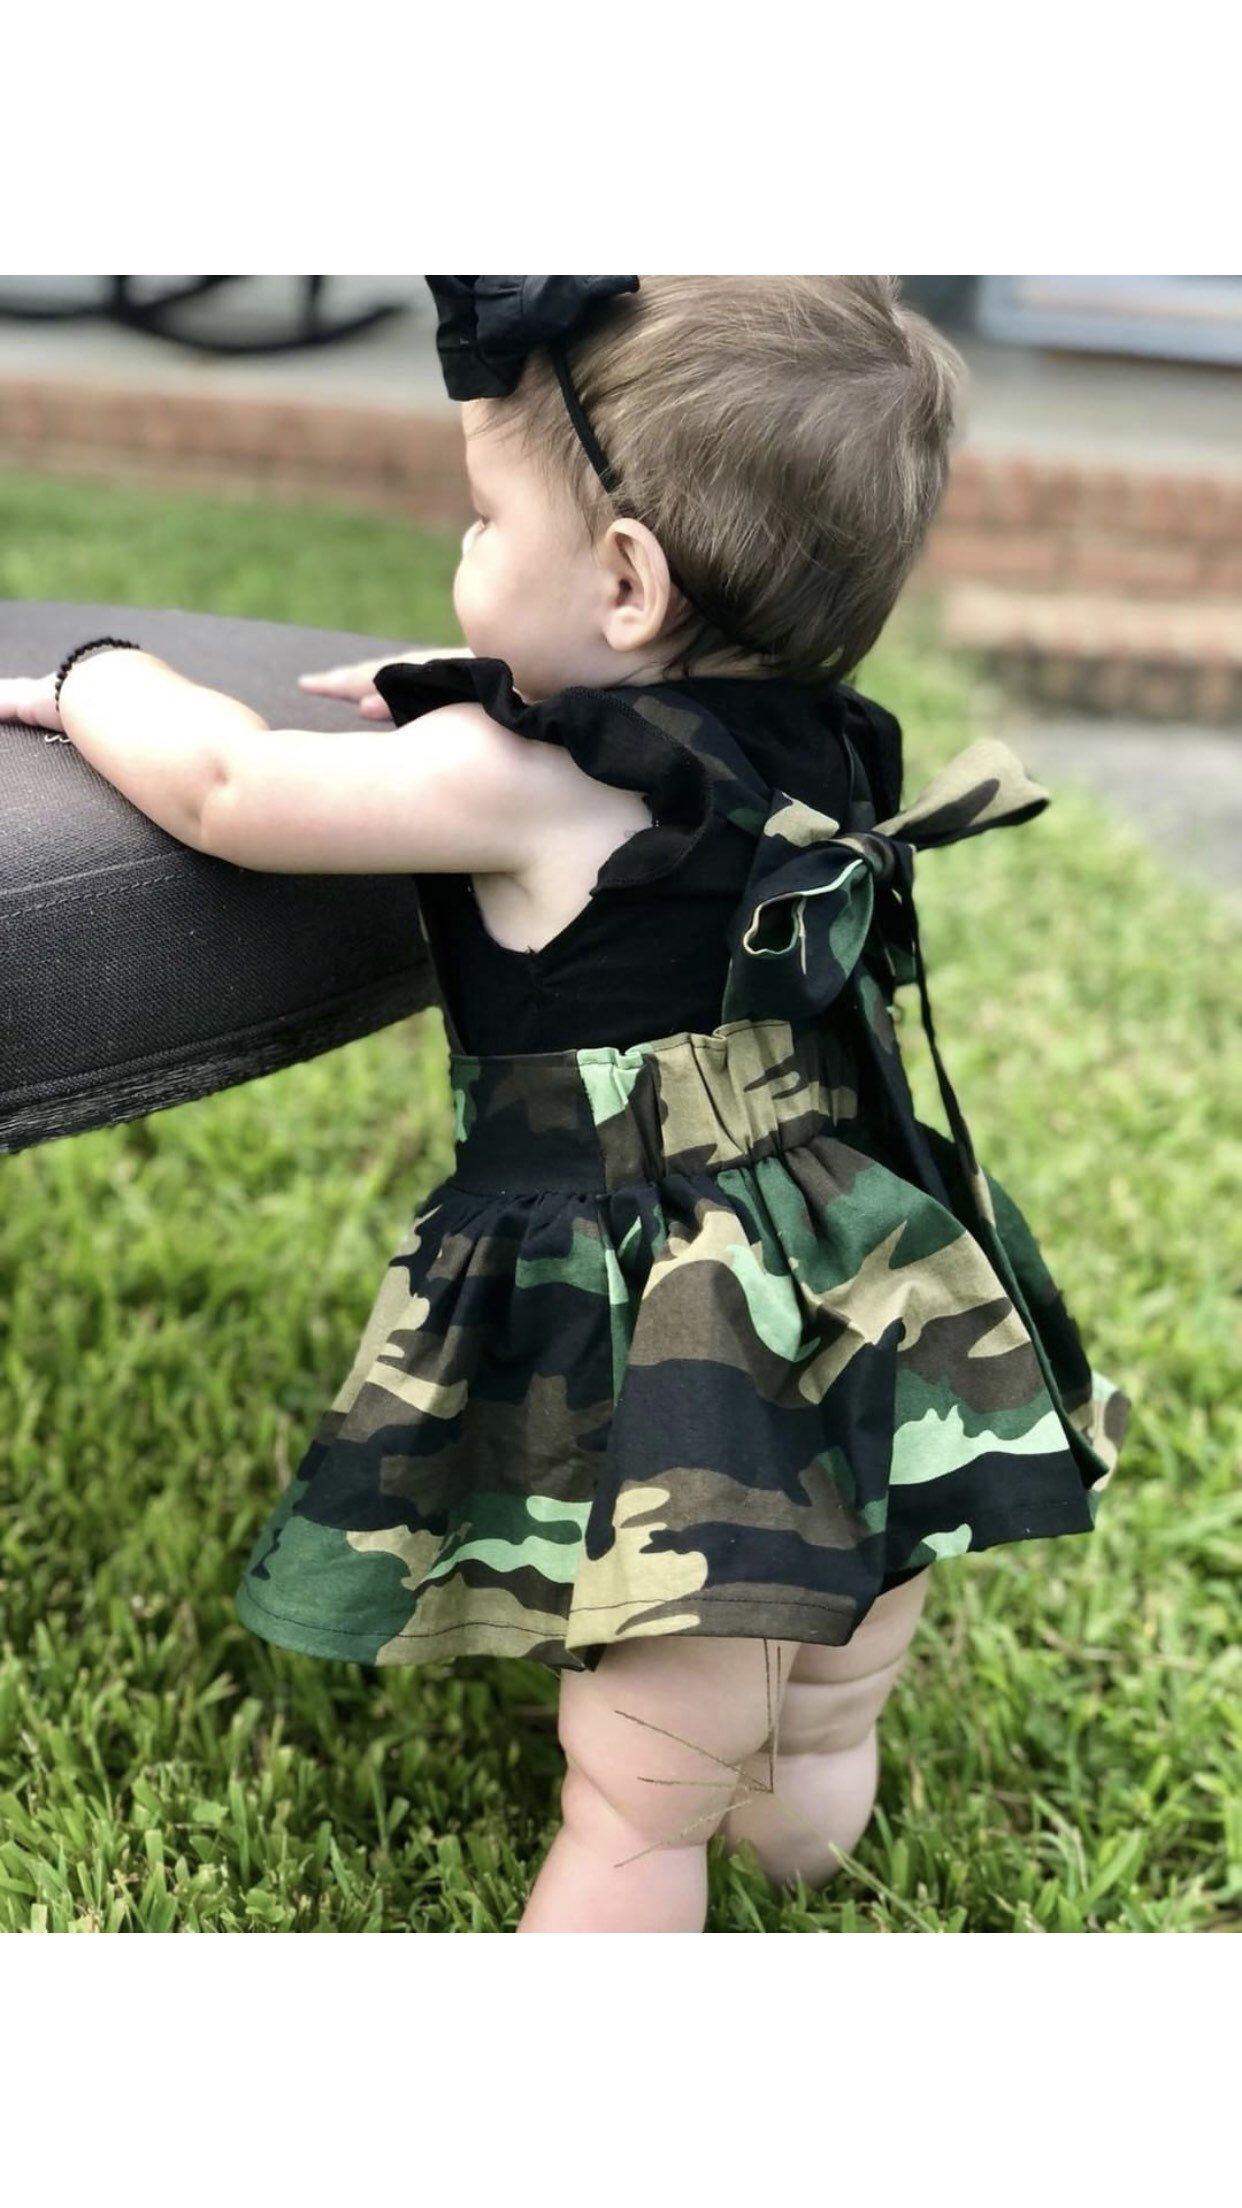 89799a592f342 Army Babe, Camo, Suspender Skirt, Dress, Camouflage, Army Baby, Army,  Suspenders, Baby Outfit, Toddler Dress, Baby Dress, Skirt, Handmade,